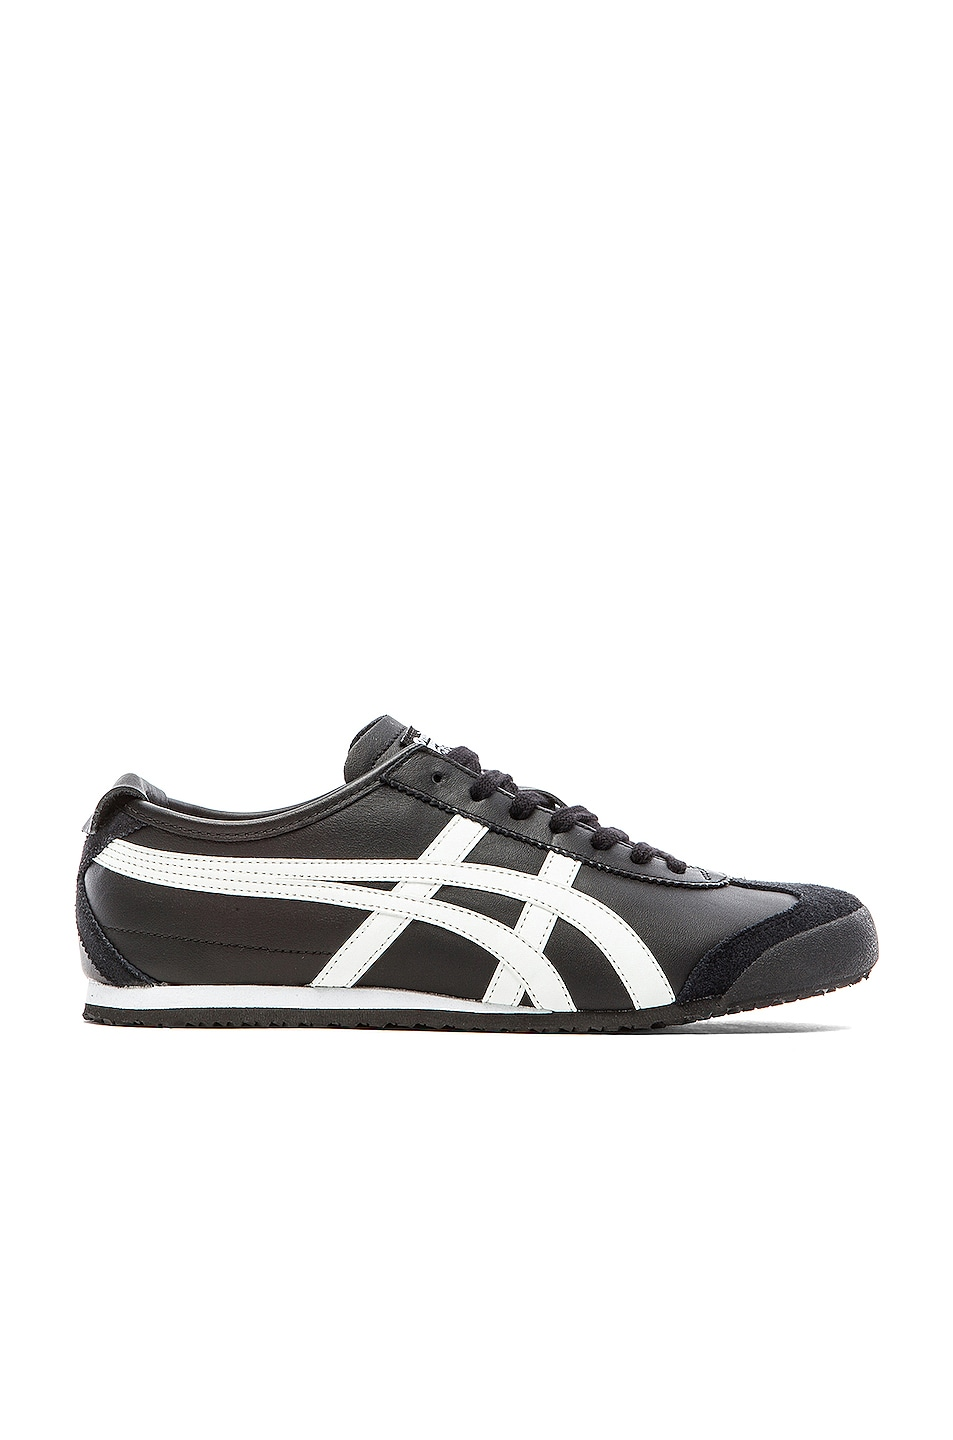 Image 1 of Onitsuka Tiger Mexico 66 in Black White